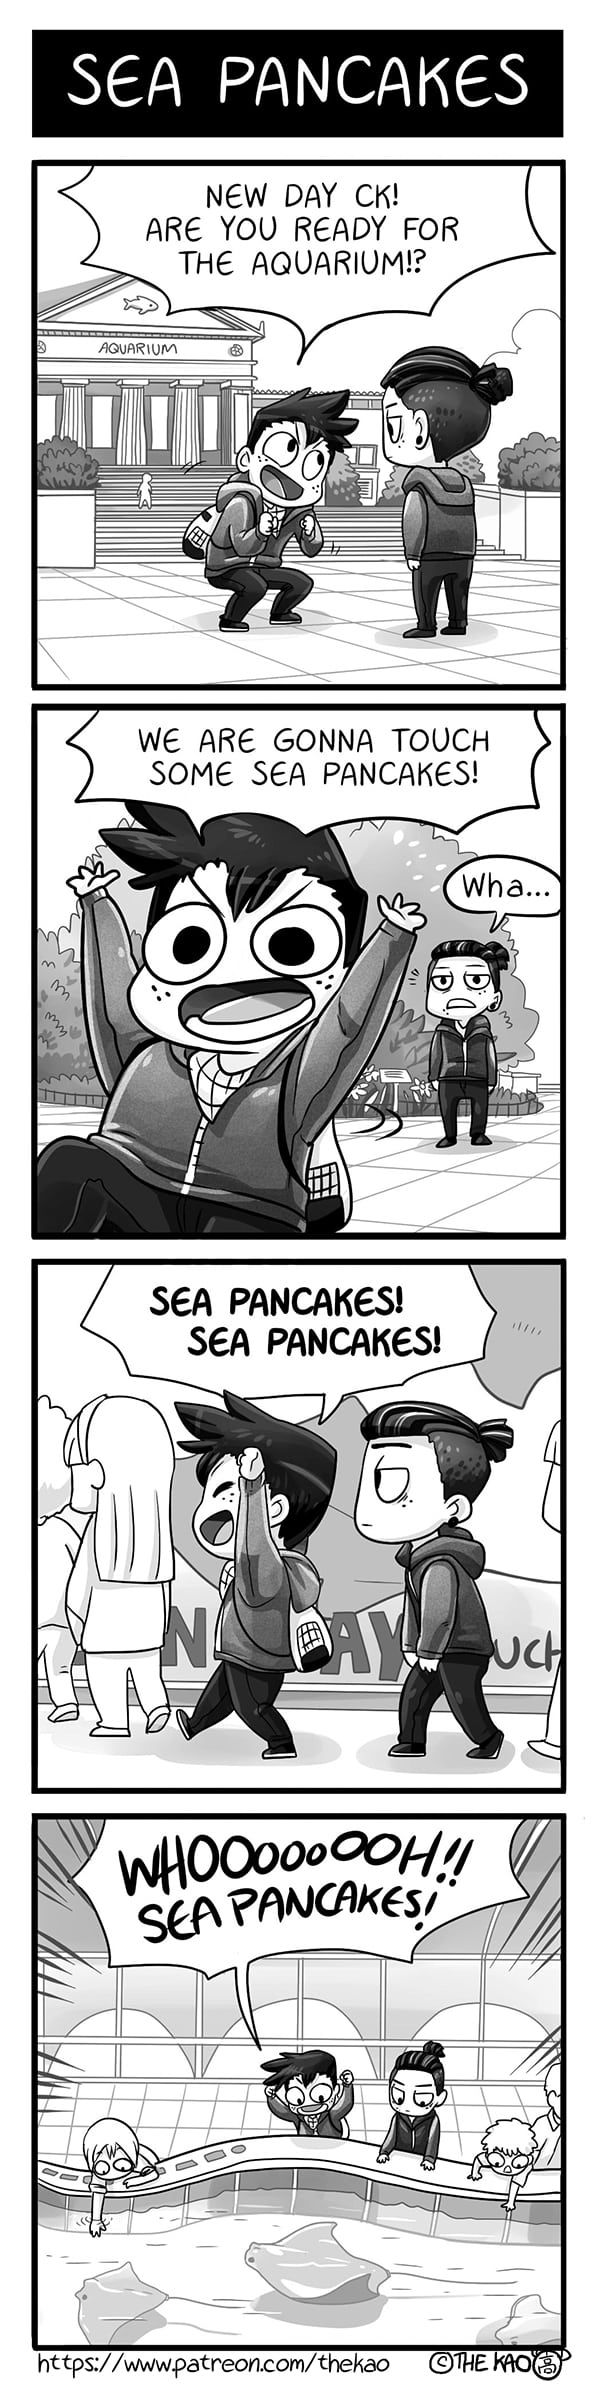 Mondo Mango :: Sea Pancakes | Tapastic Comics - image 1<<I went to an aquarium once and there was a section where you could touch the majestic sea flap-flaps, but I couldn't touch them because I was too short to reach any ;(